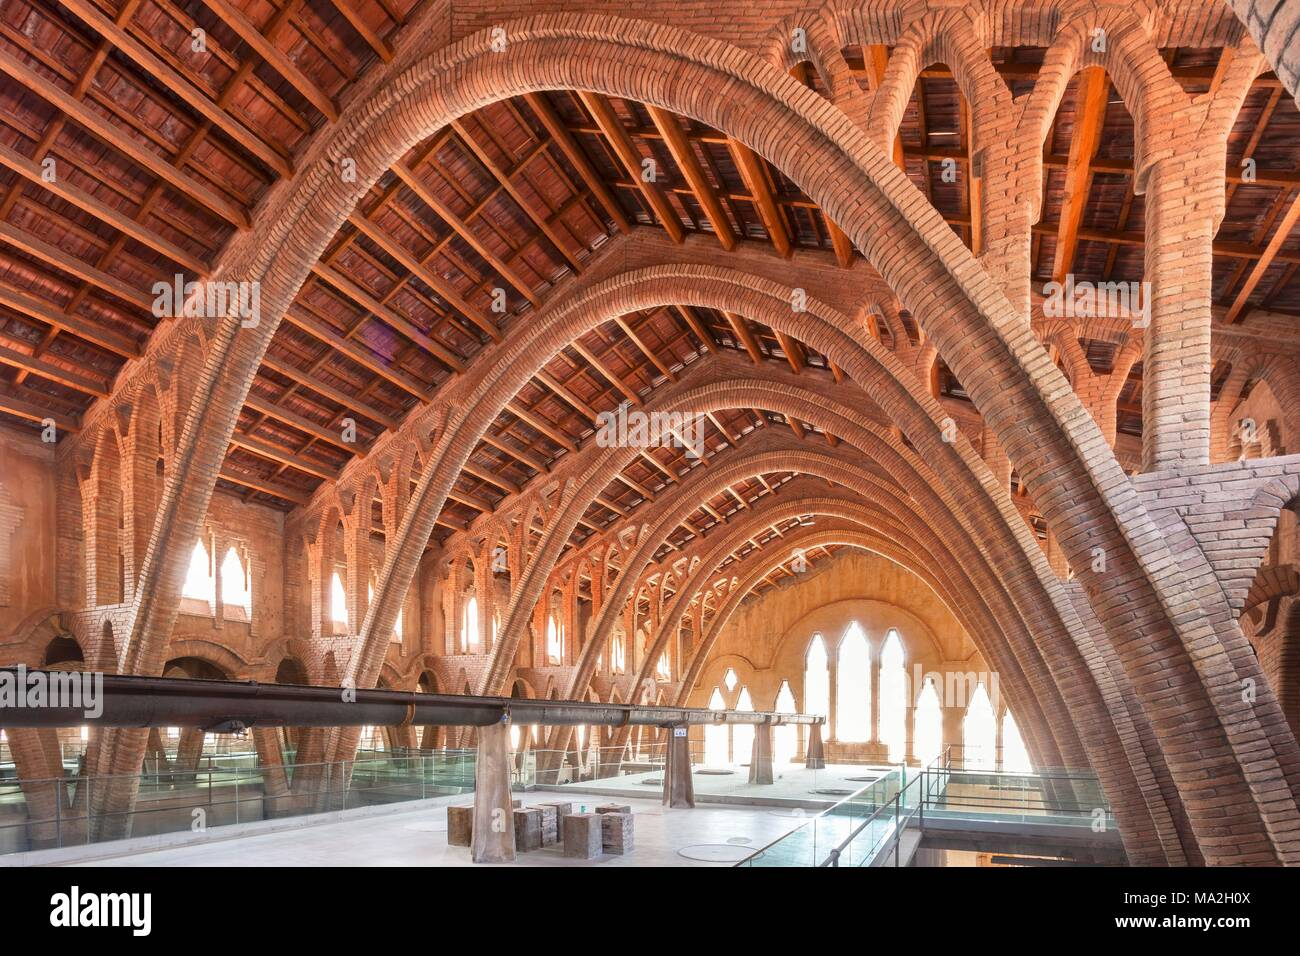 The Cooperatiu de Gandesa celler (Catalonian parabolic arches), Catalonia, Spain - Stock Image